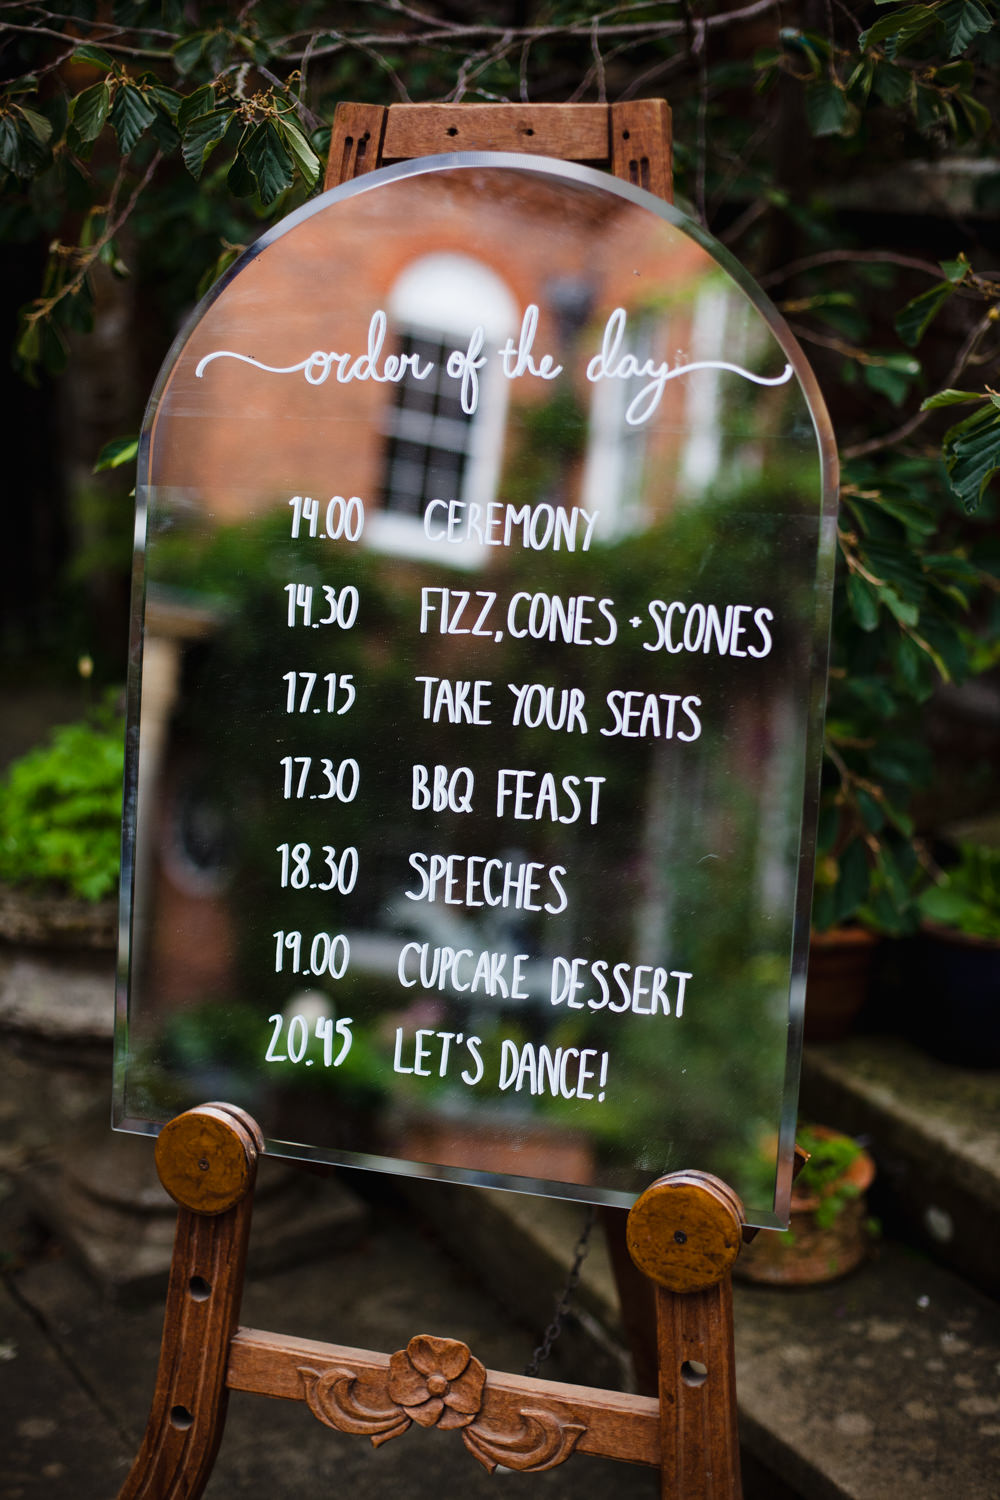 Mirror Calligraphy Order Day Sign Fun Laughter Relaxed Wedding Chris Barber Photography